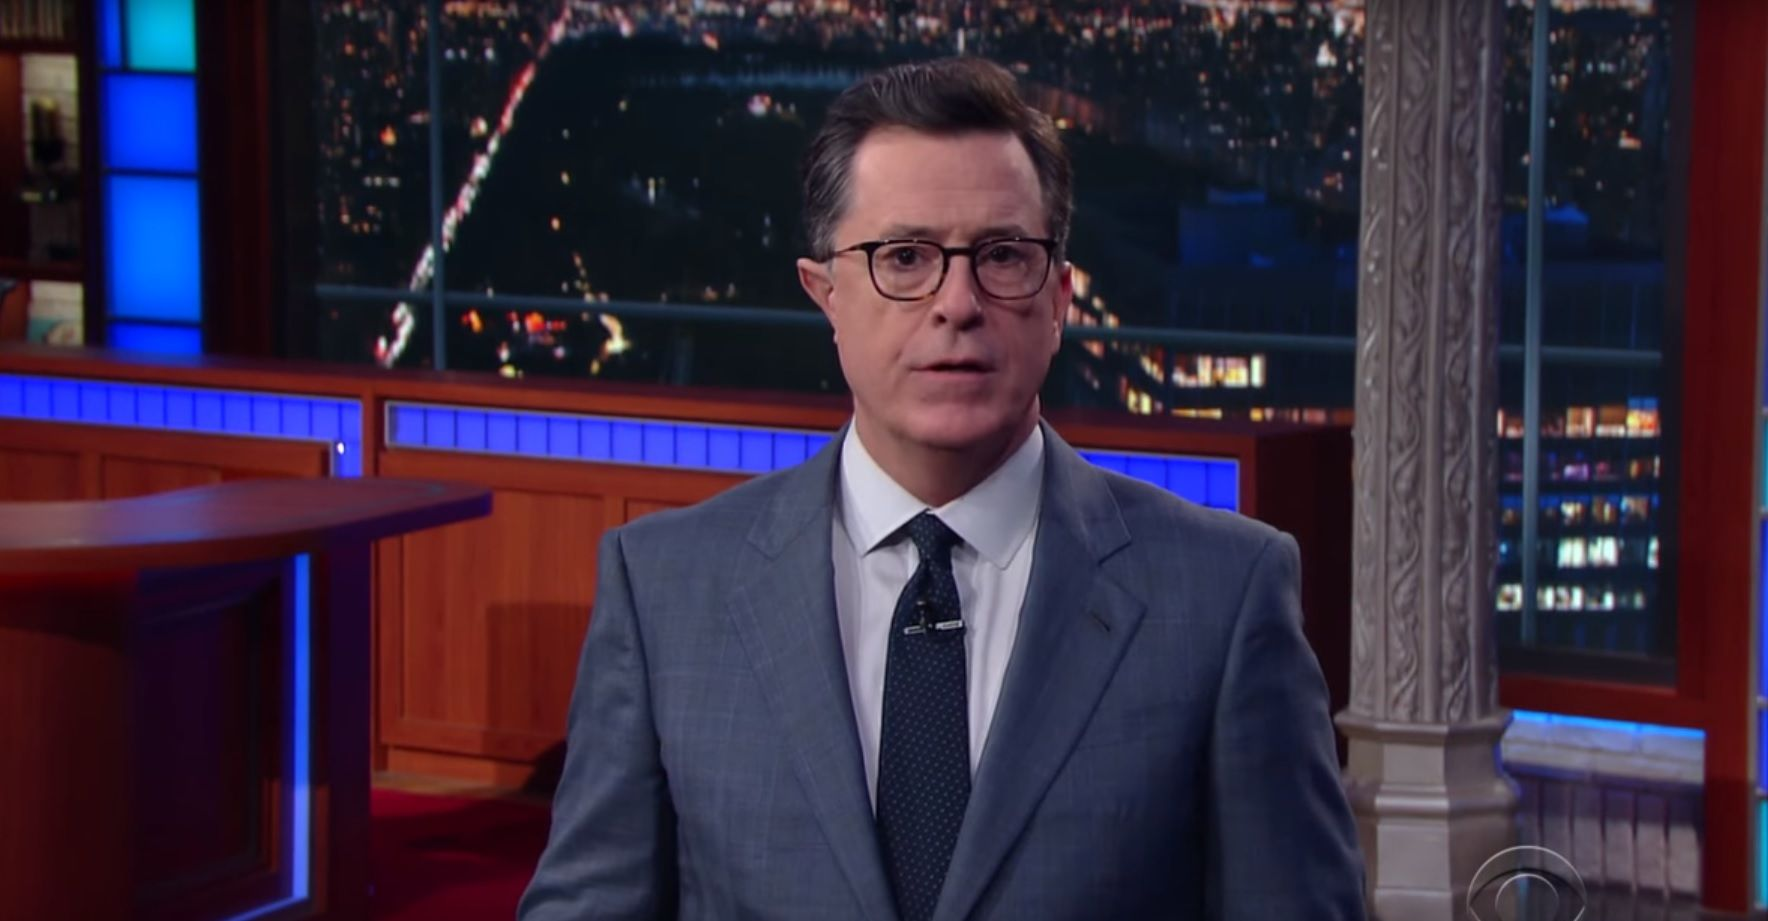 Stephen Colbert thanks Trump